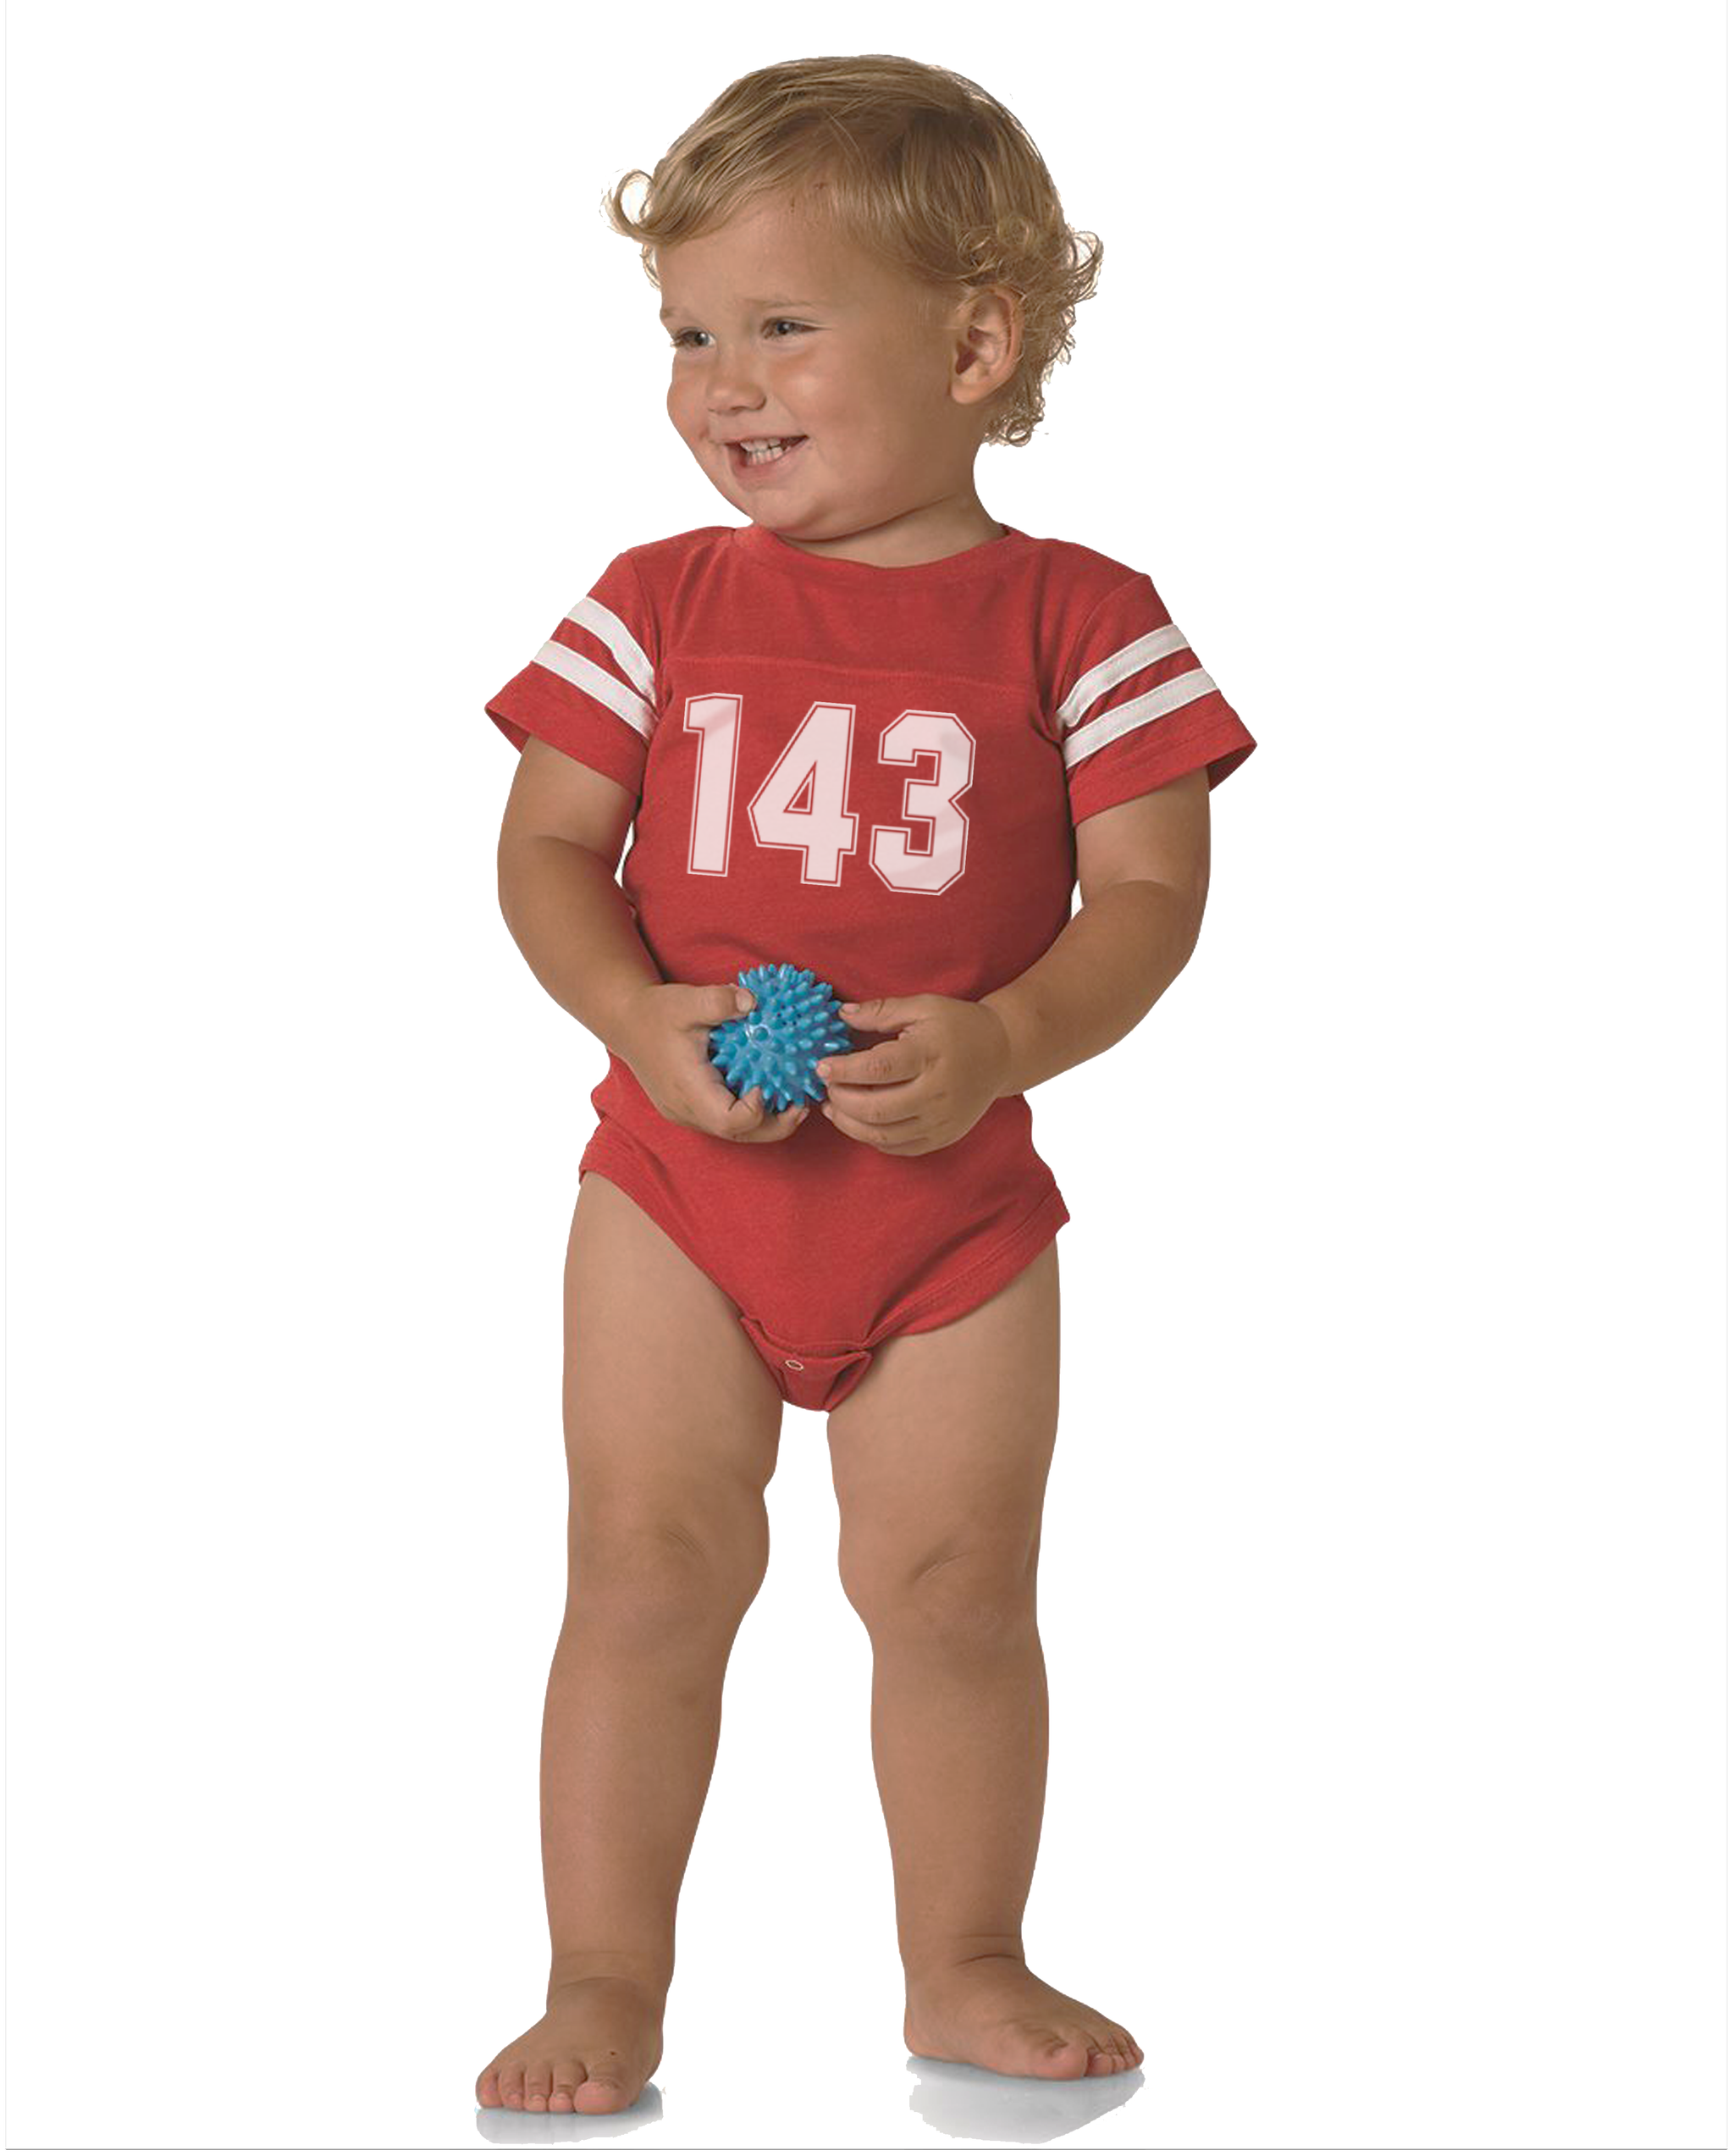 143 Baby Red Football T-Shirt Onesie